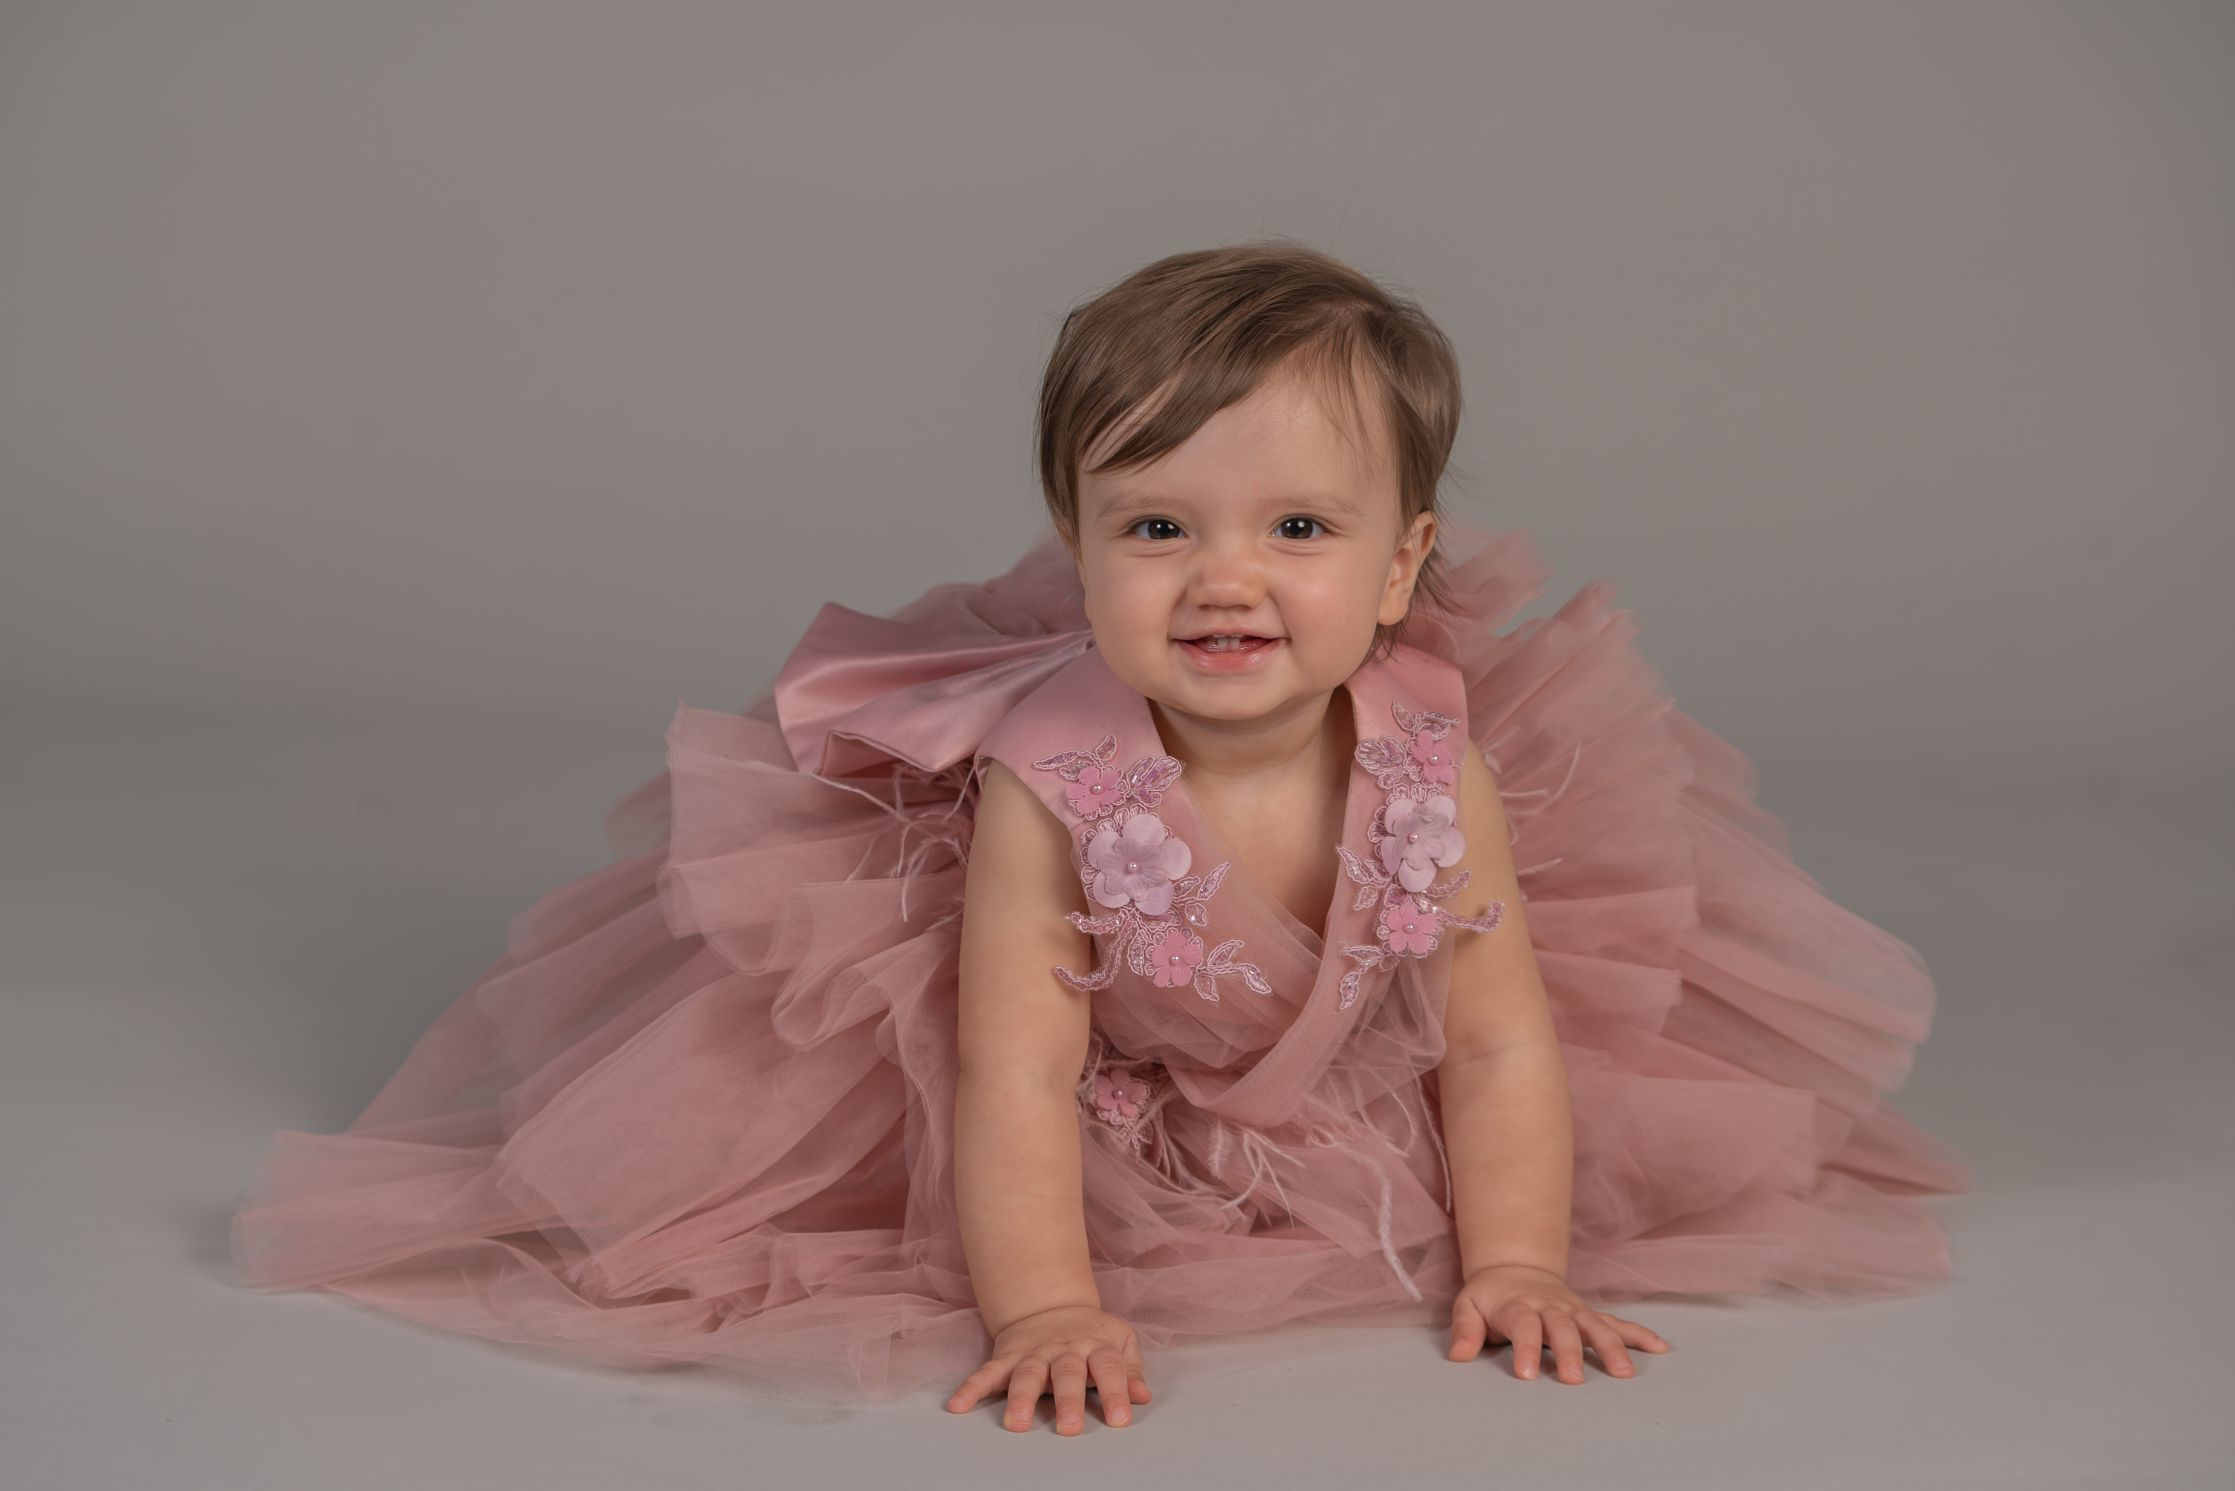 Baby Girl Photoshoot With Pink Dress